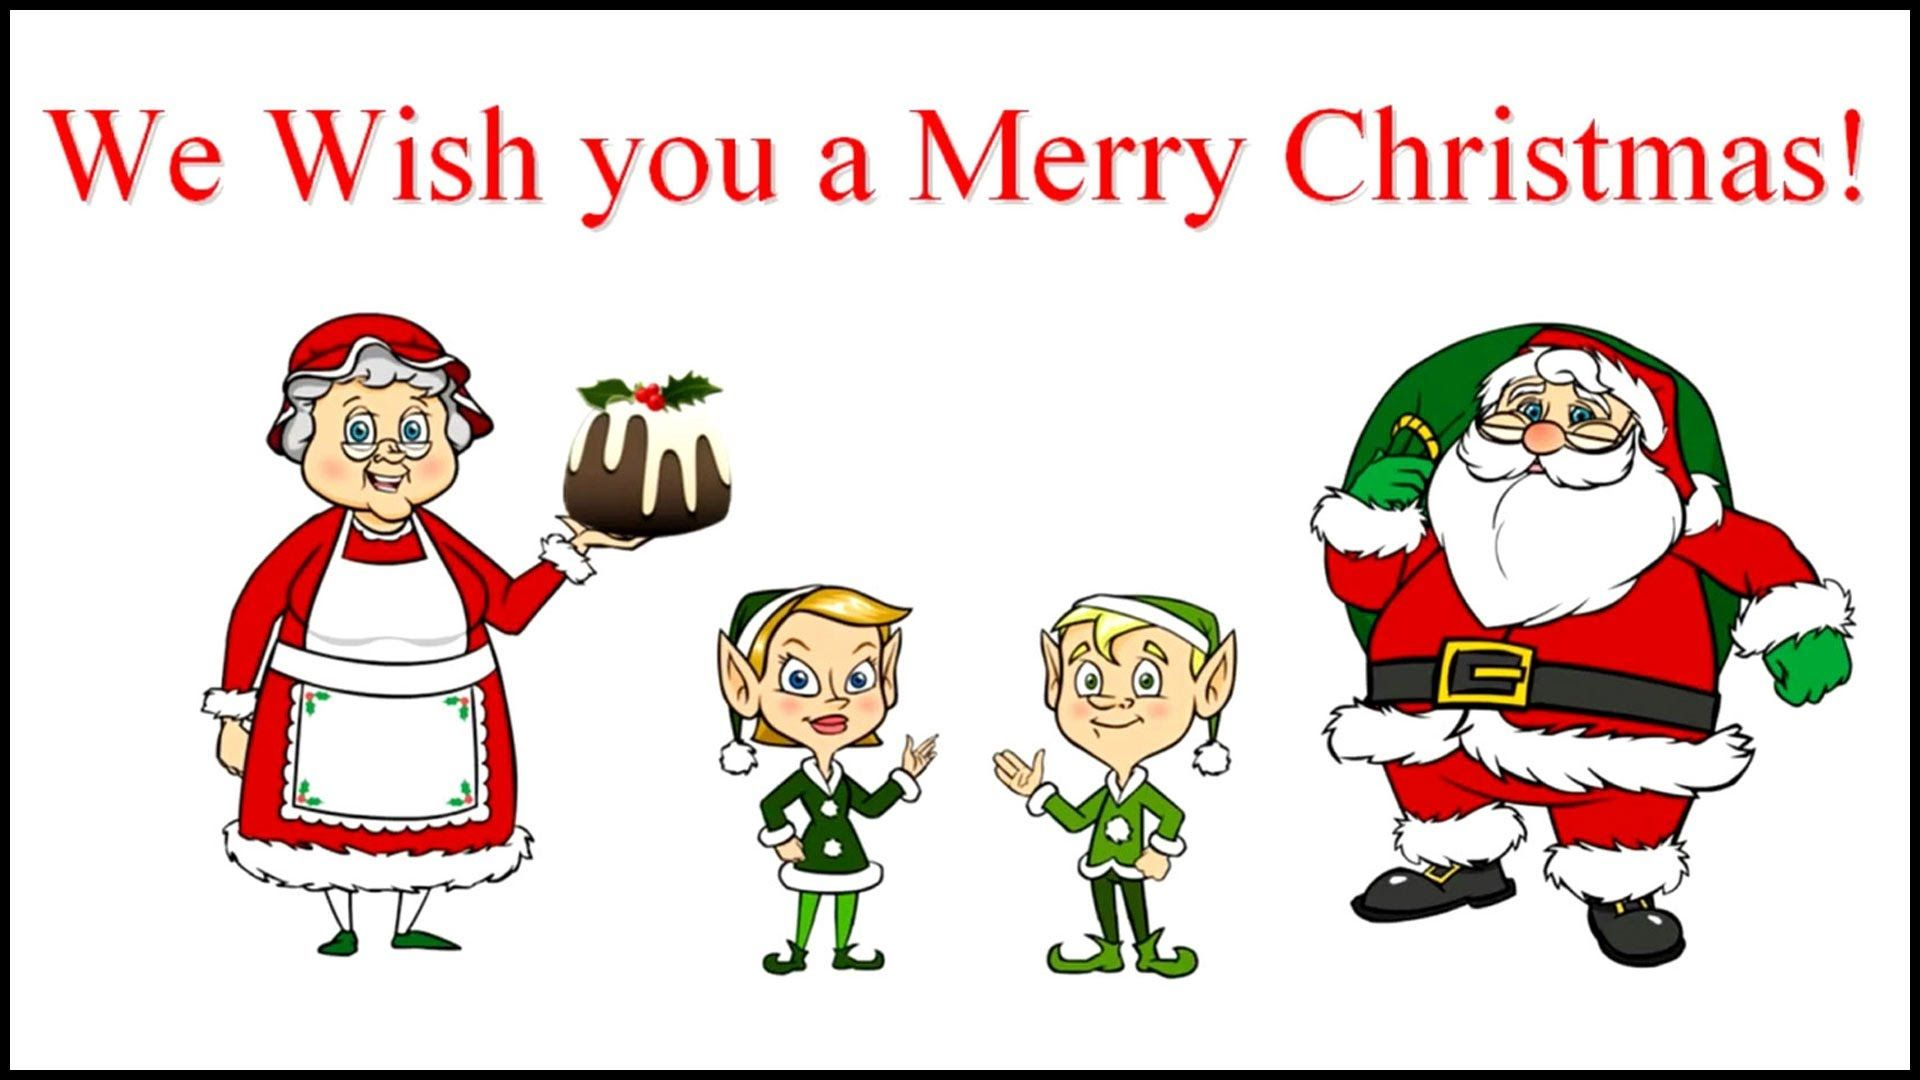 WE WISH YOU A MERRY CHRISTMAS Lyrics (With images) Adult